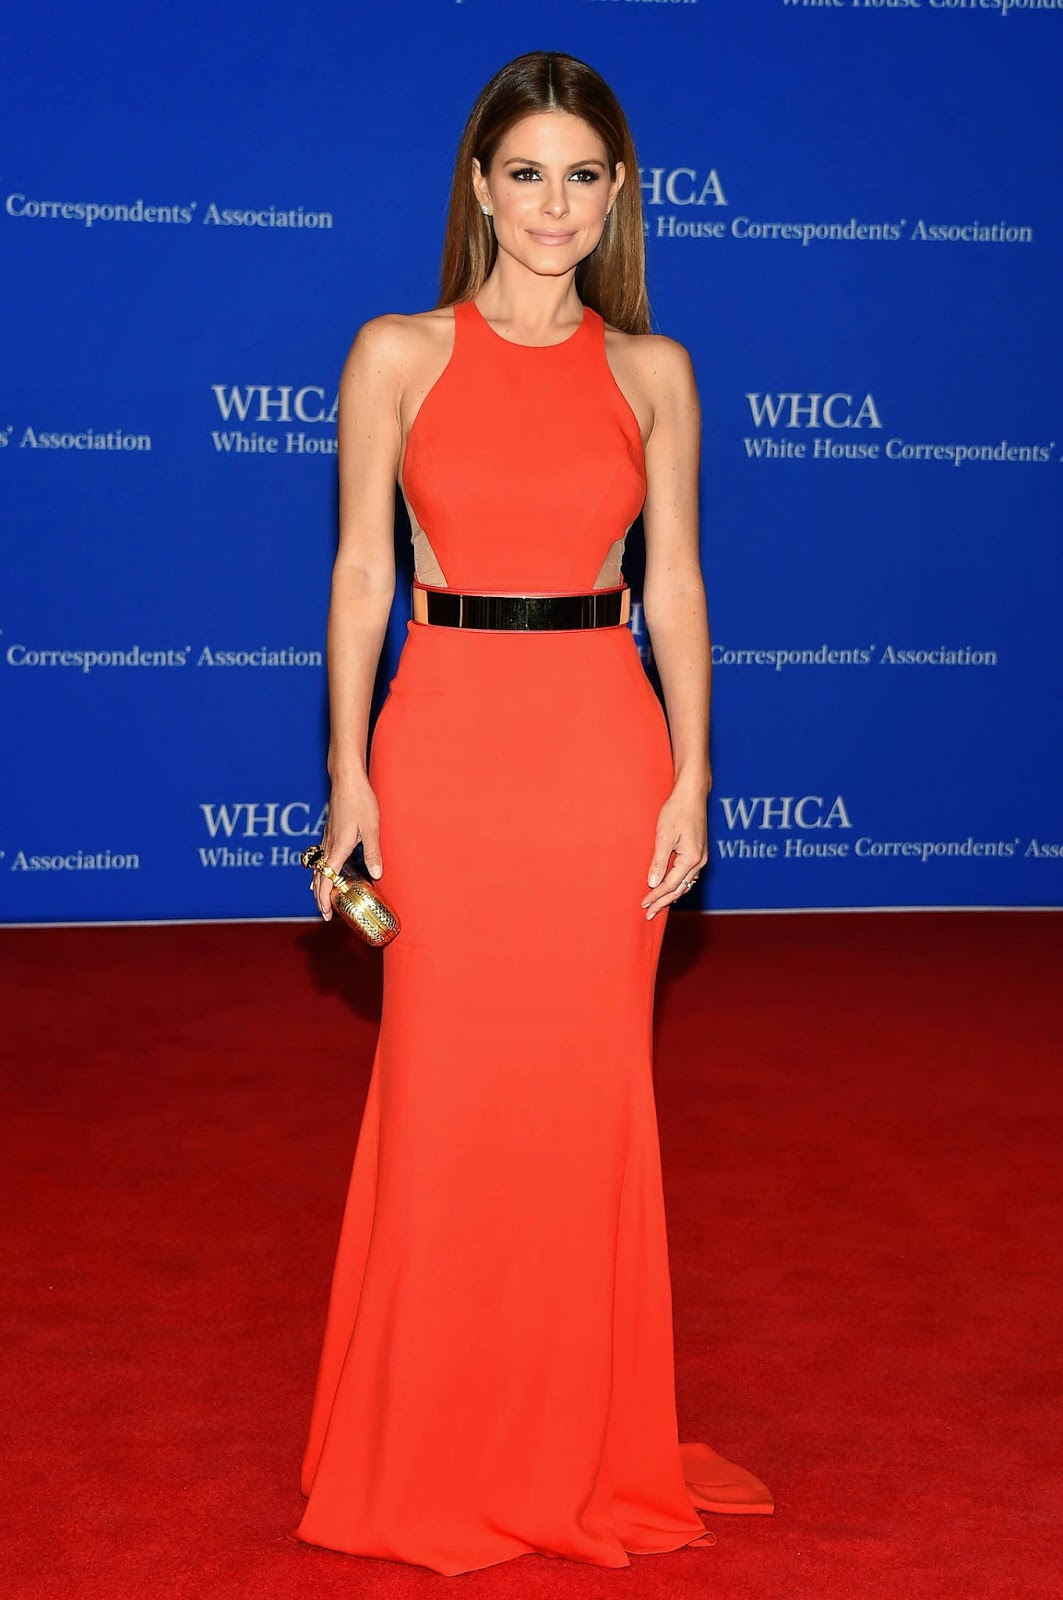 Maria Menounos in a figure hugging dress at the 2015 White House Correspondents' Association Dinner